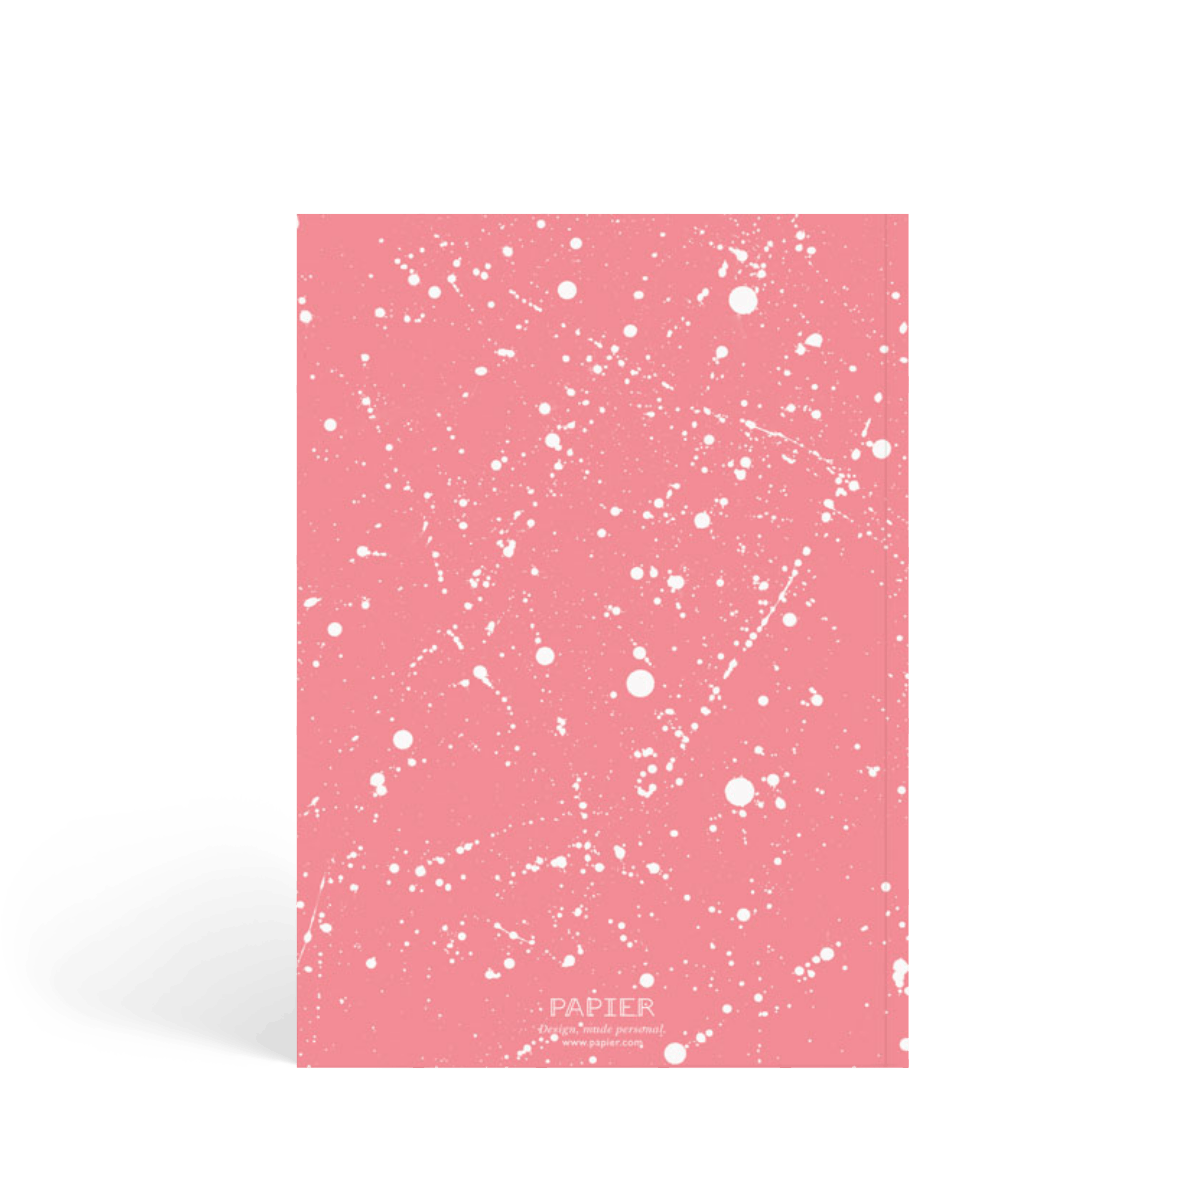 Https%3a%2f%2fwww.papier.com%2fproduct image%2f30132%2f5%2fcoral splatter 7599 back 1508949544.png?ixlib=rb 1.1